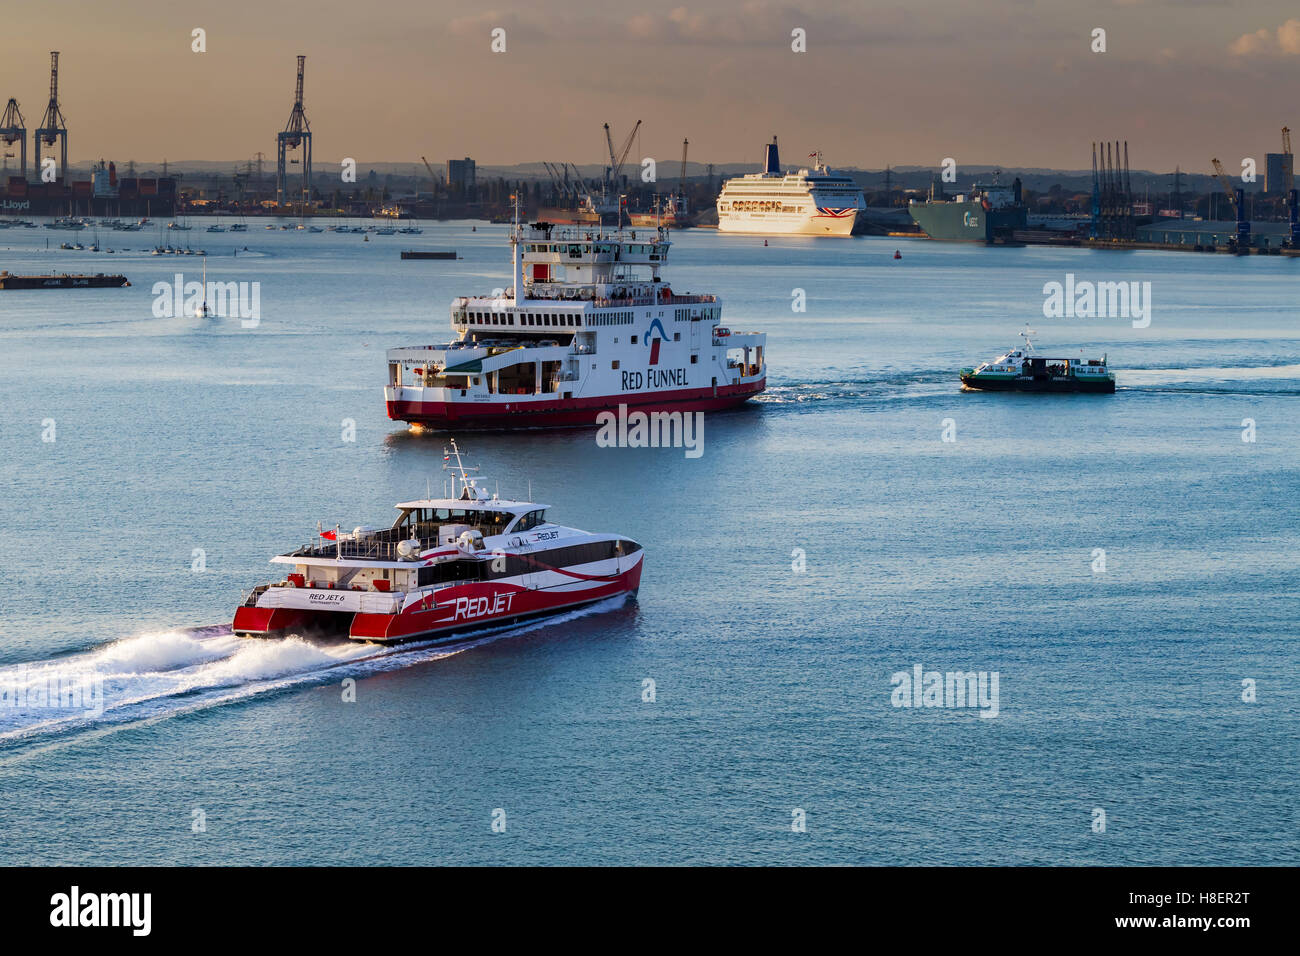 RedJet arriving and Red Funnel Ferries leaving Southampton, u.k. Stock Photo